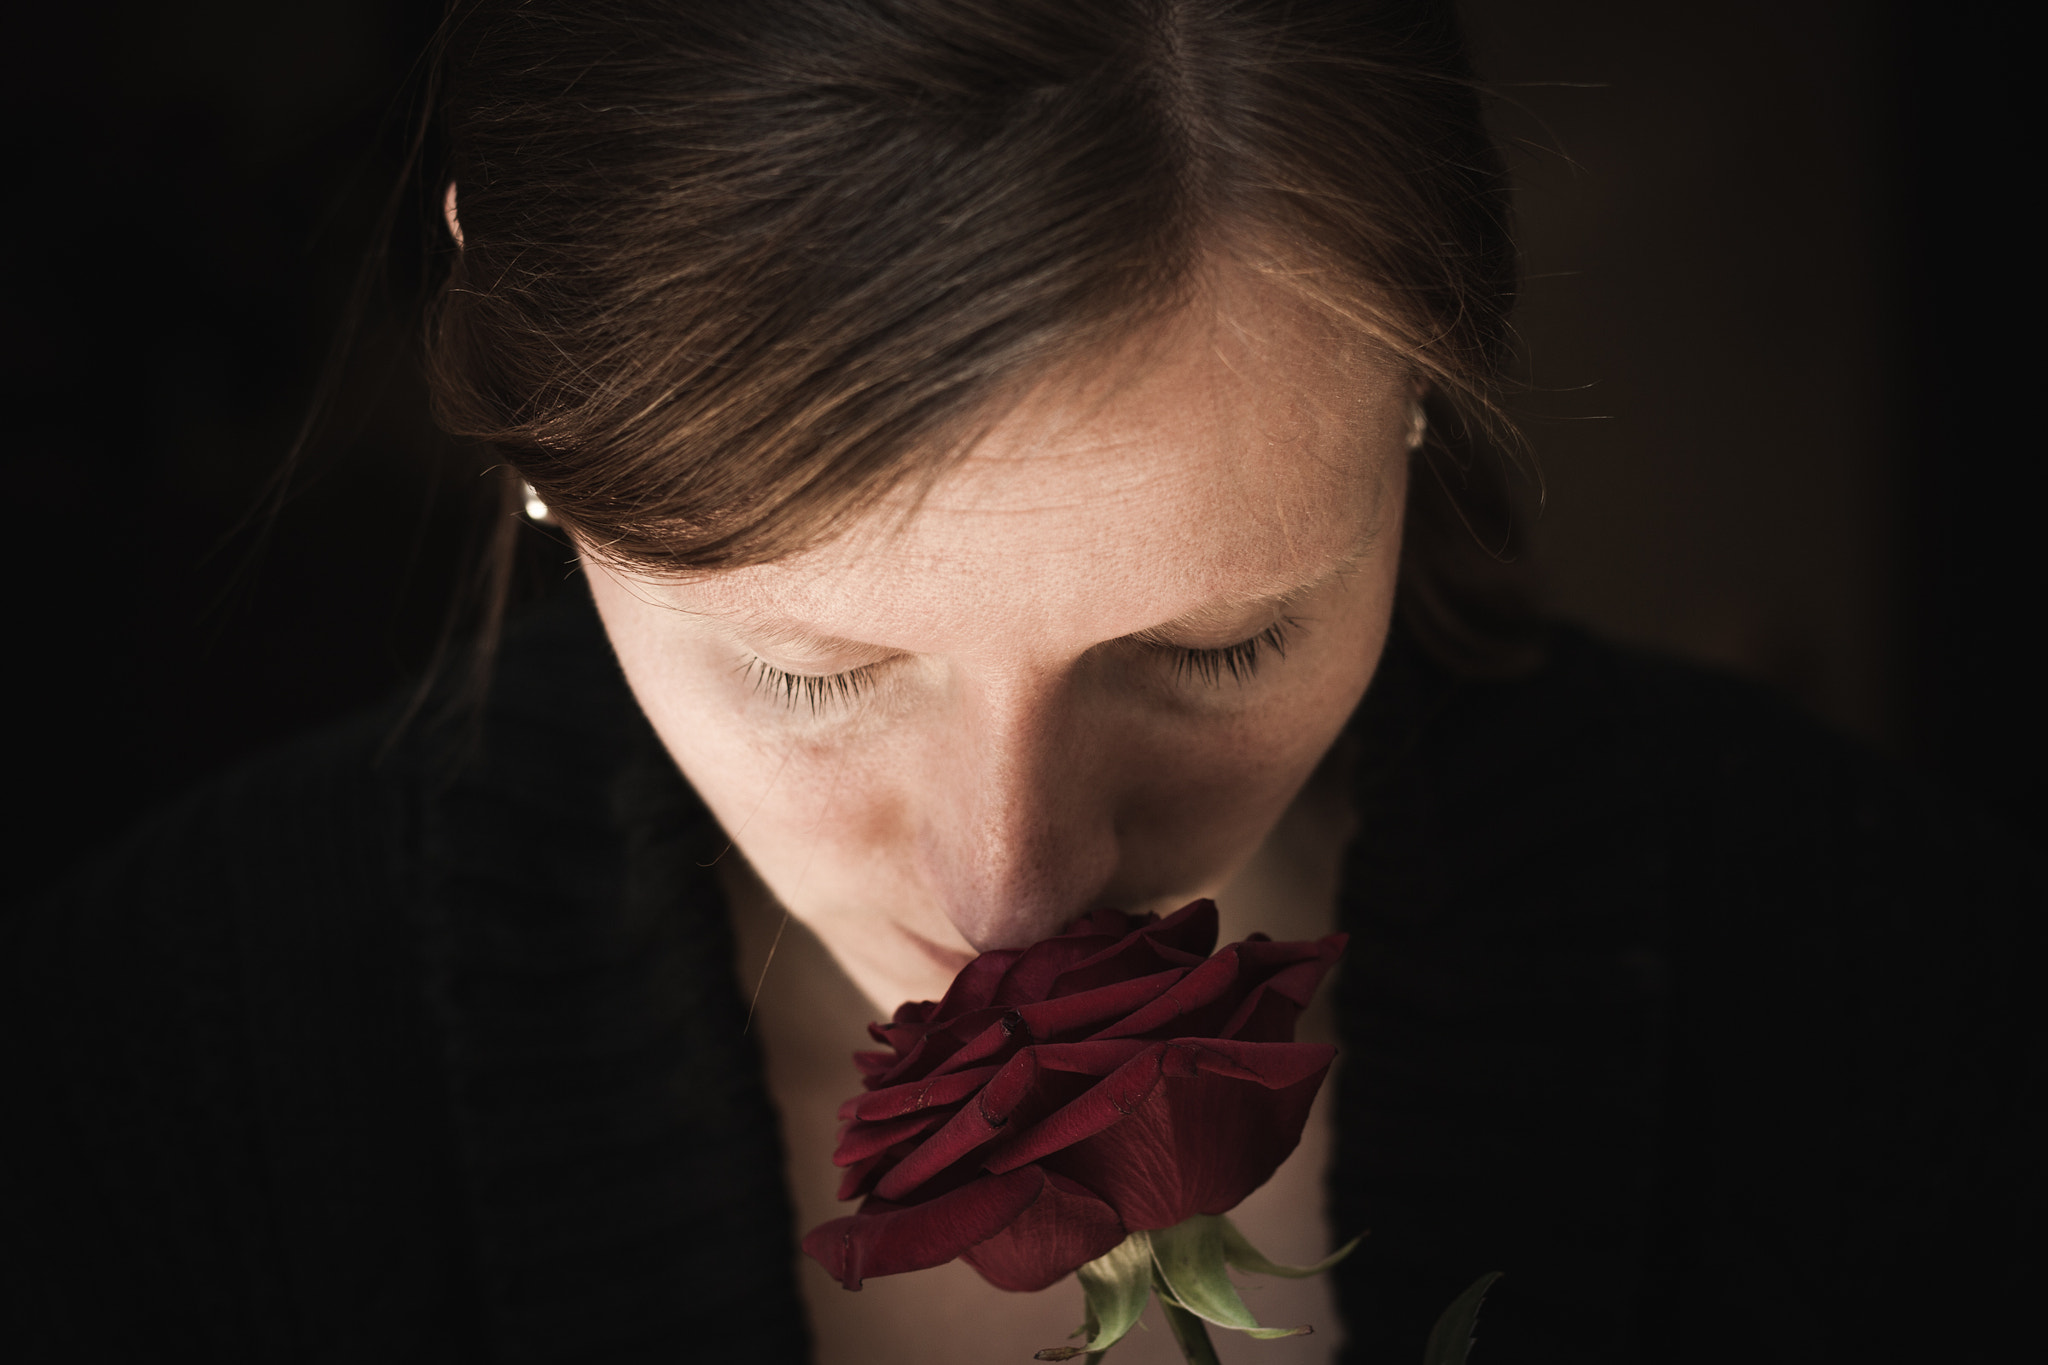 Photograph self with a rose by Andrea Schunert on 500px